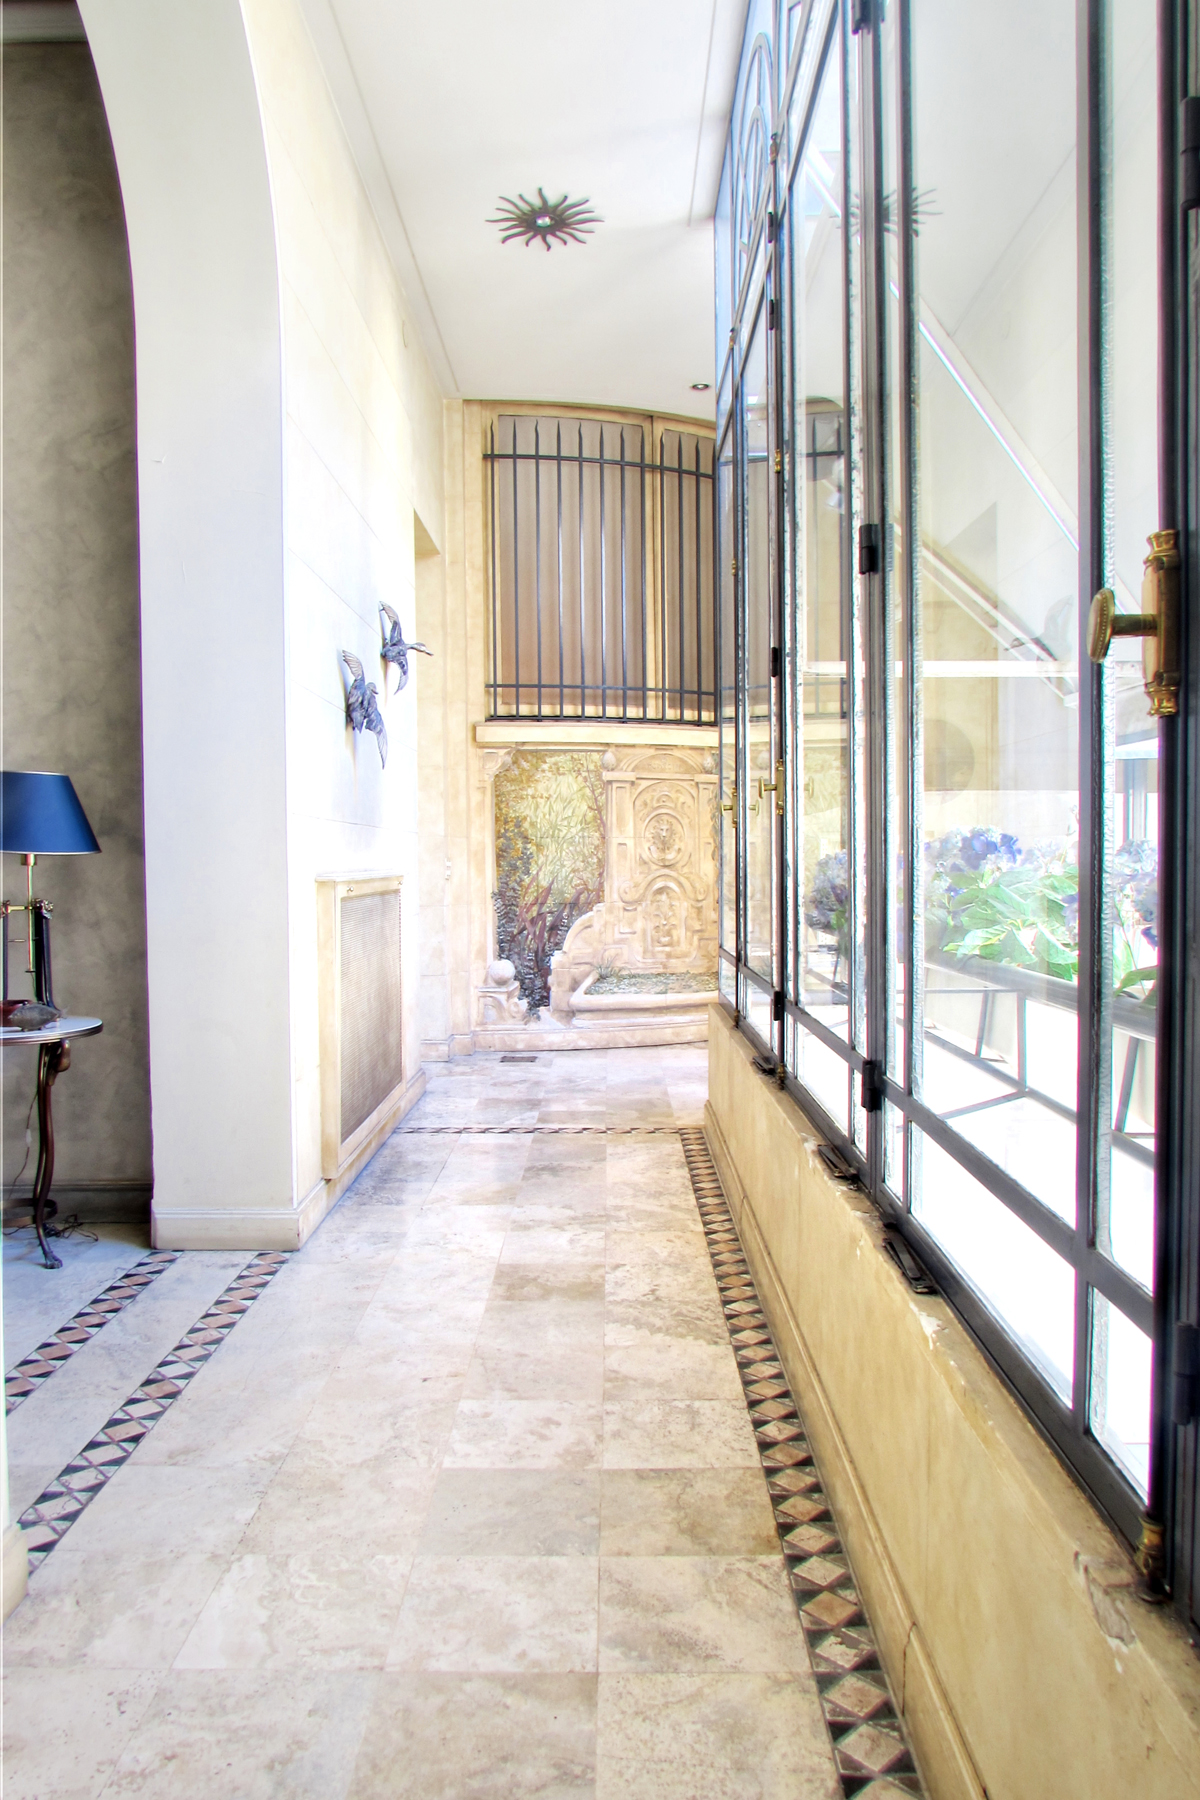 Additional photo for property listing at Majestic 530 m2 apartment Juncal 900 Buenos Aires, Buenos Aires C1062ABG Argentina